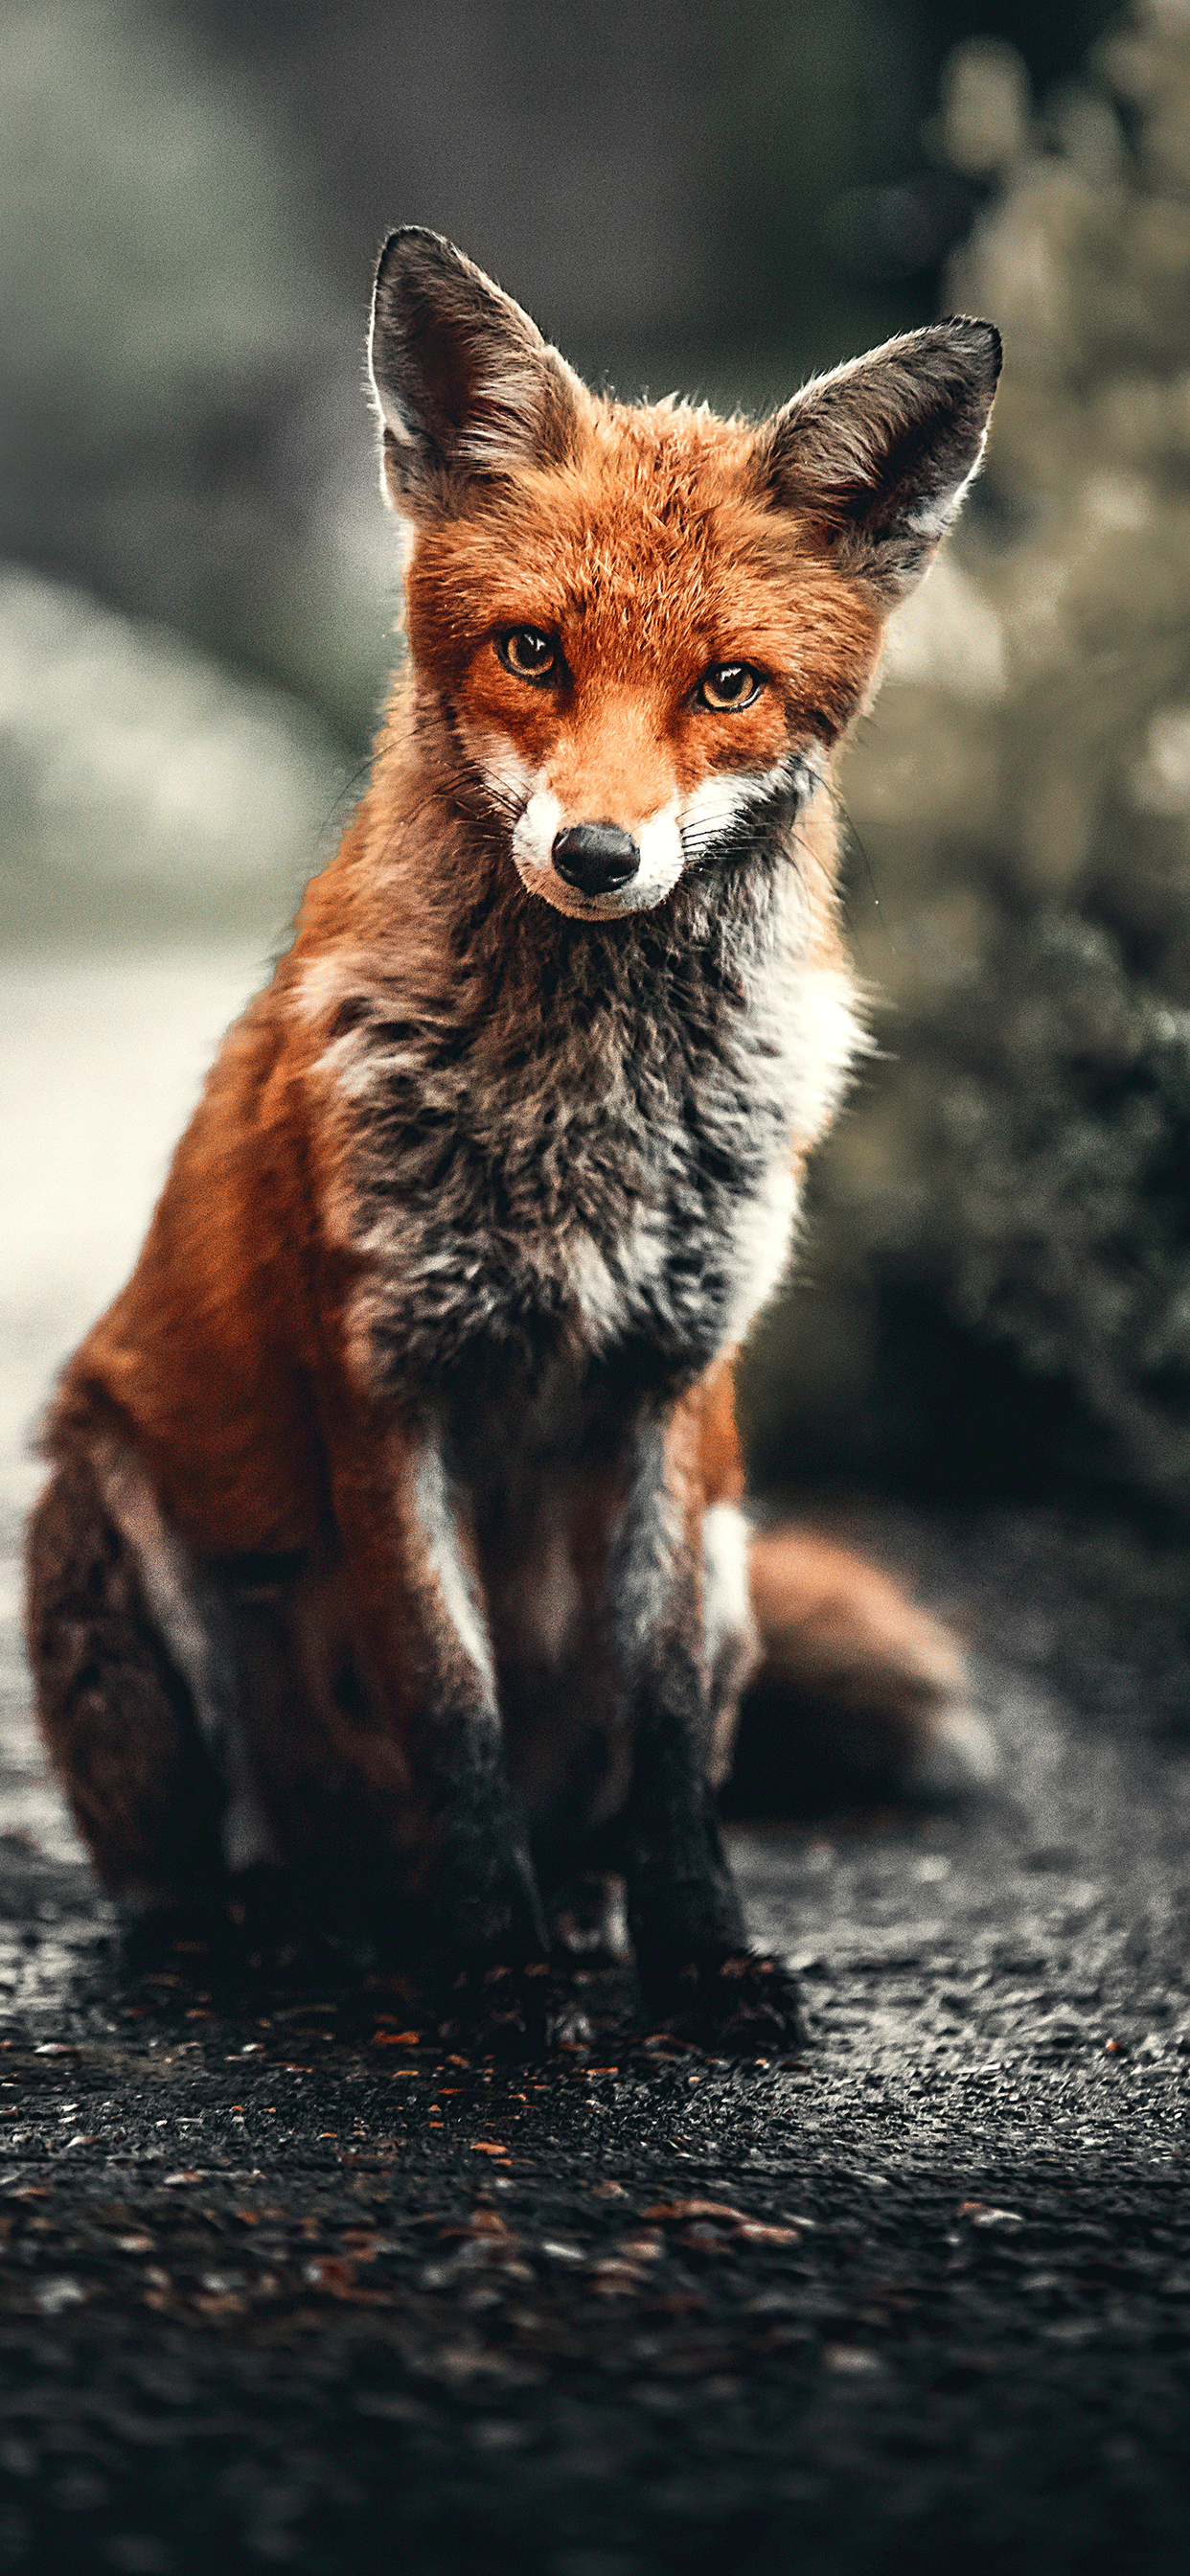 iPhone wallpapers fox looking camera Fonds d'écran iPhone du 28/06/2019